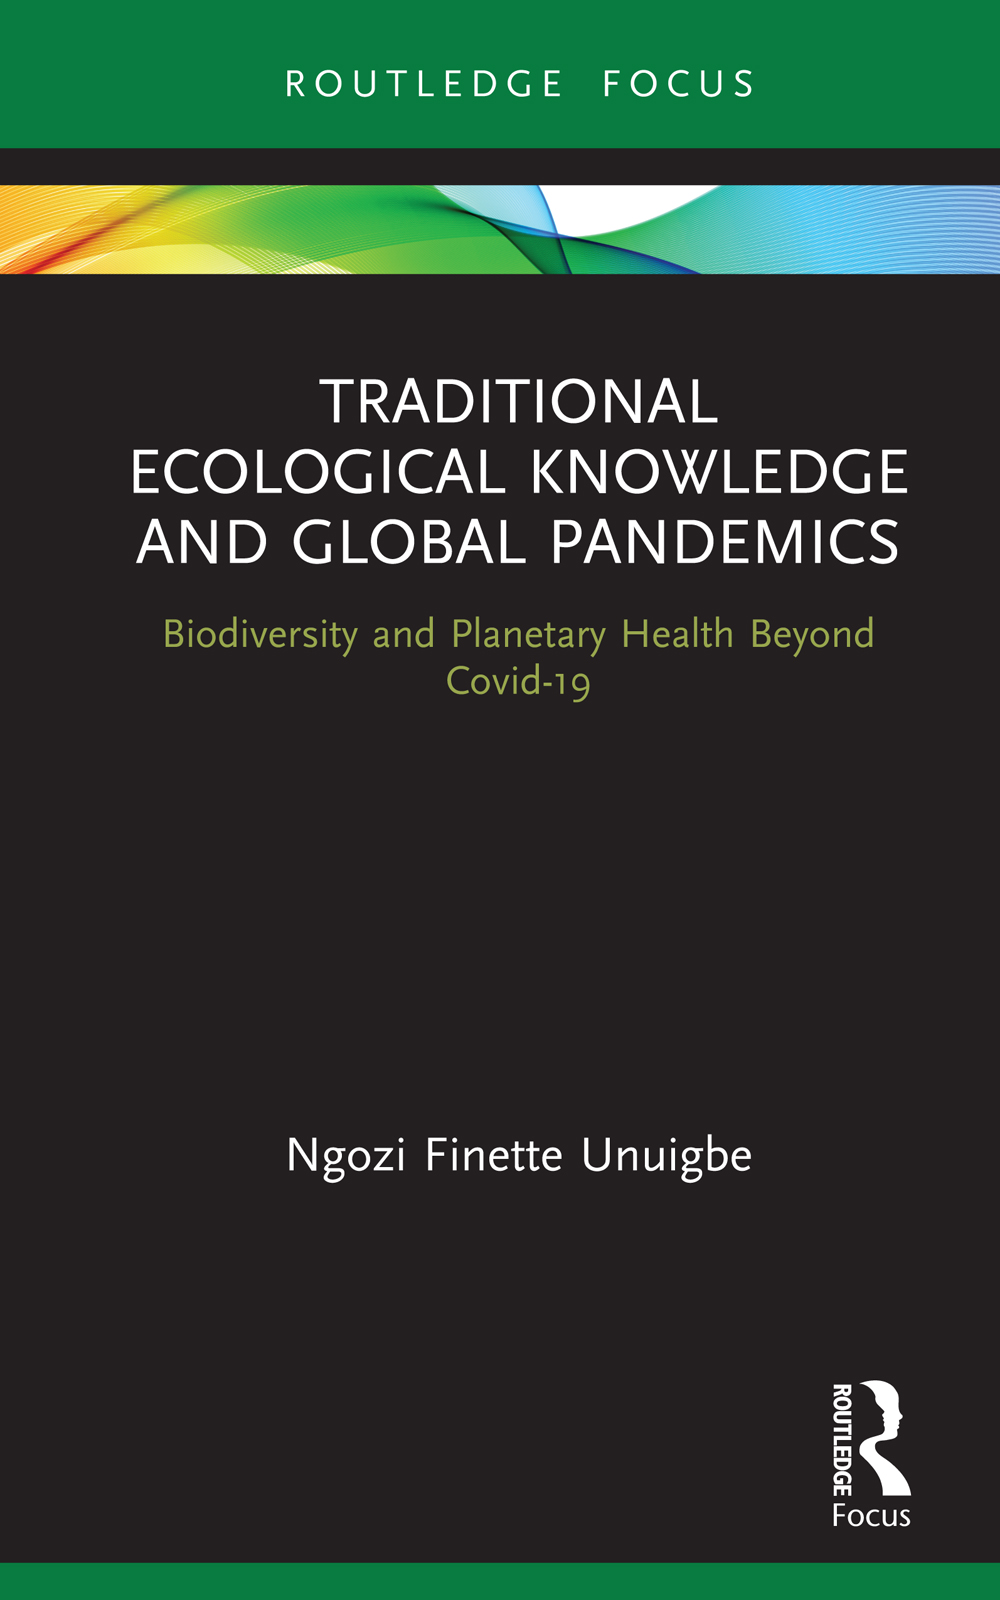 Why traditional ecological knowledge matters